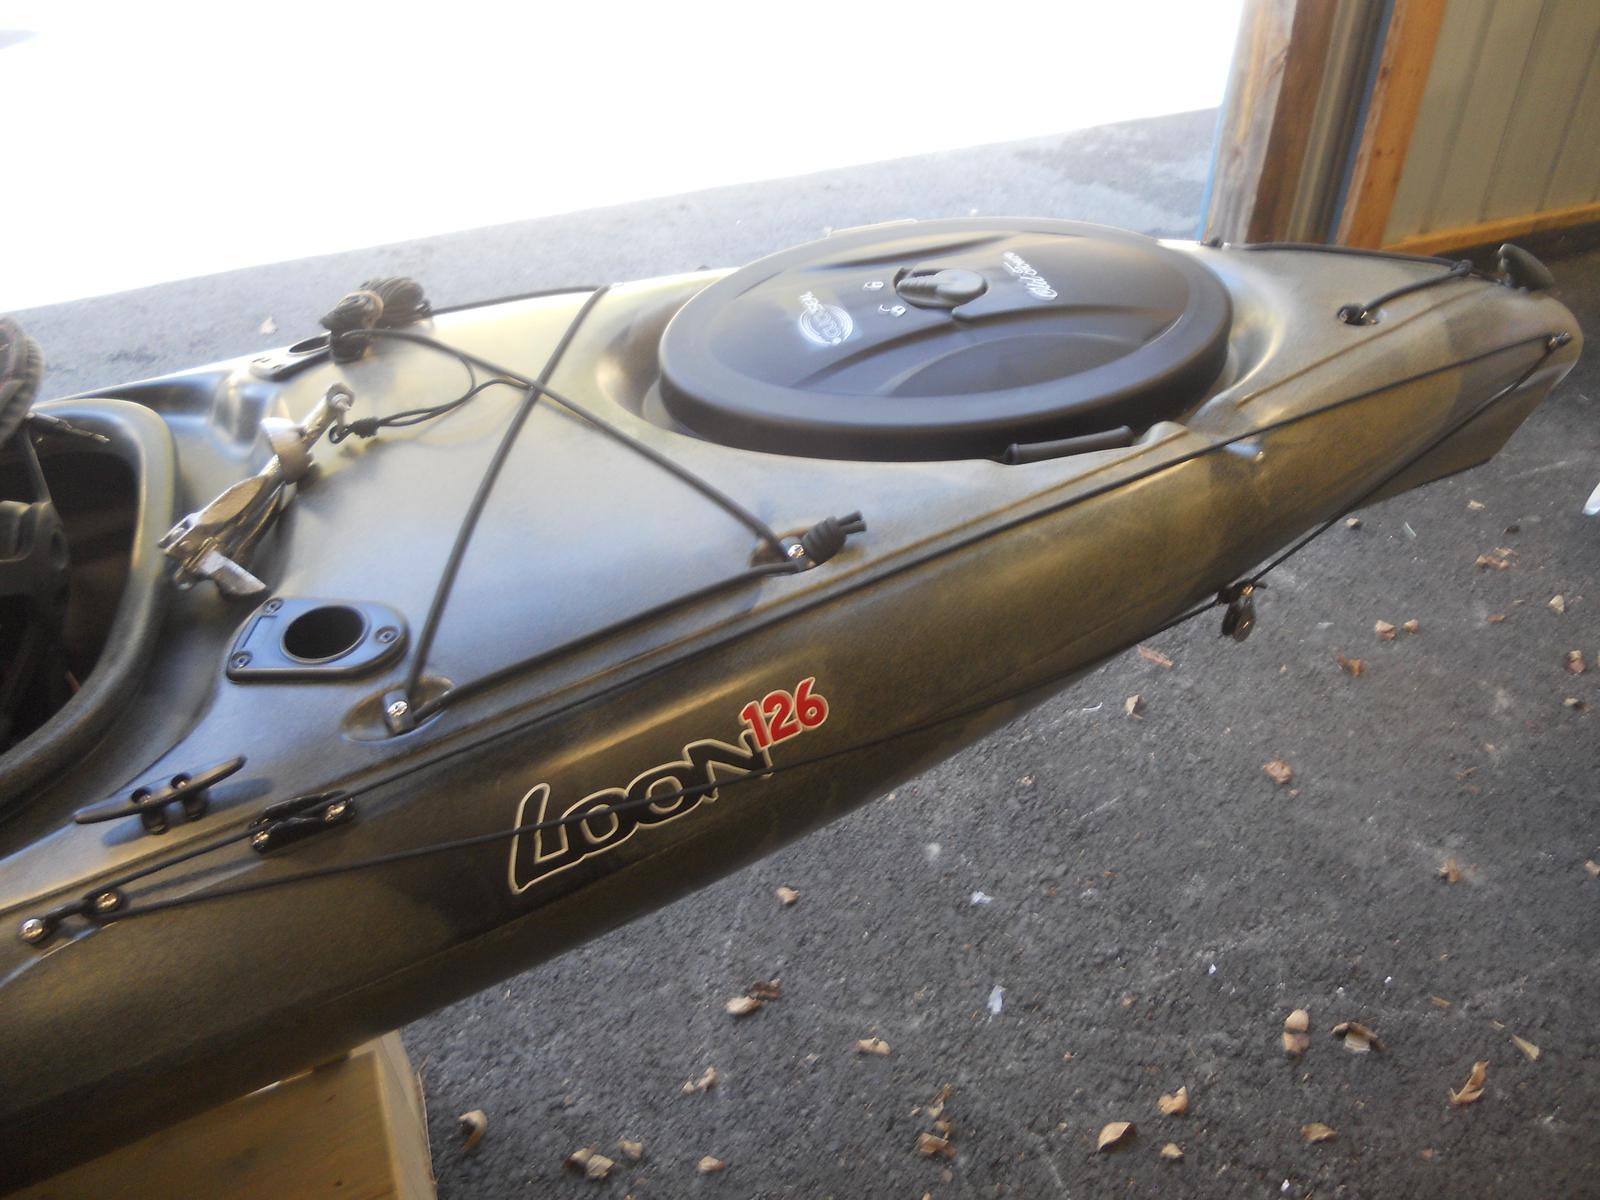 2019 Old Town Canoes and Kayaks Loon 126 Angler for sale in